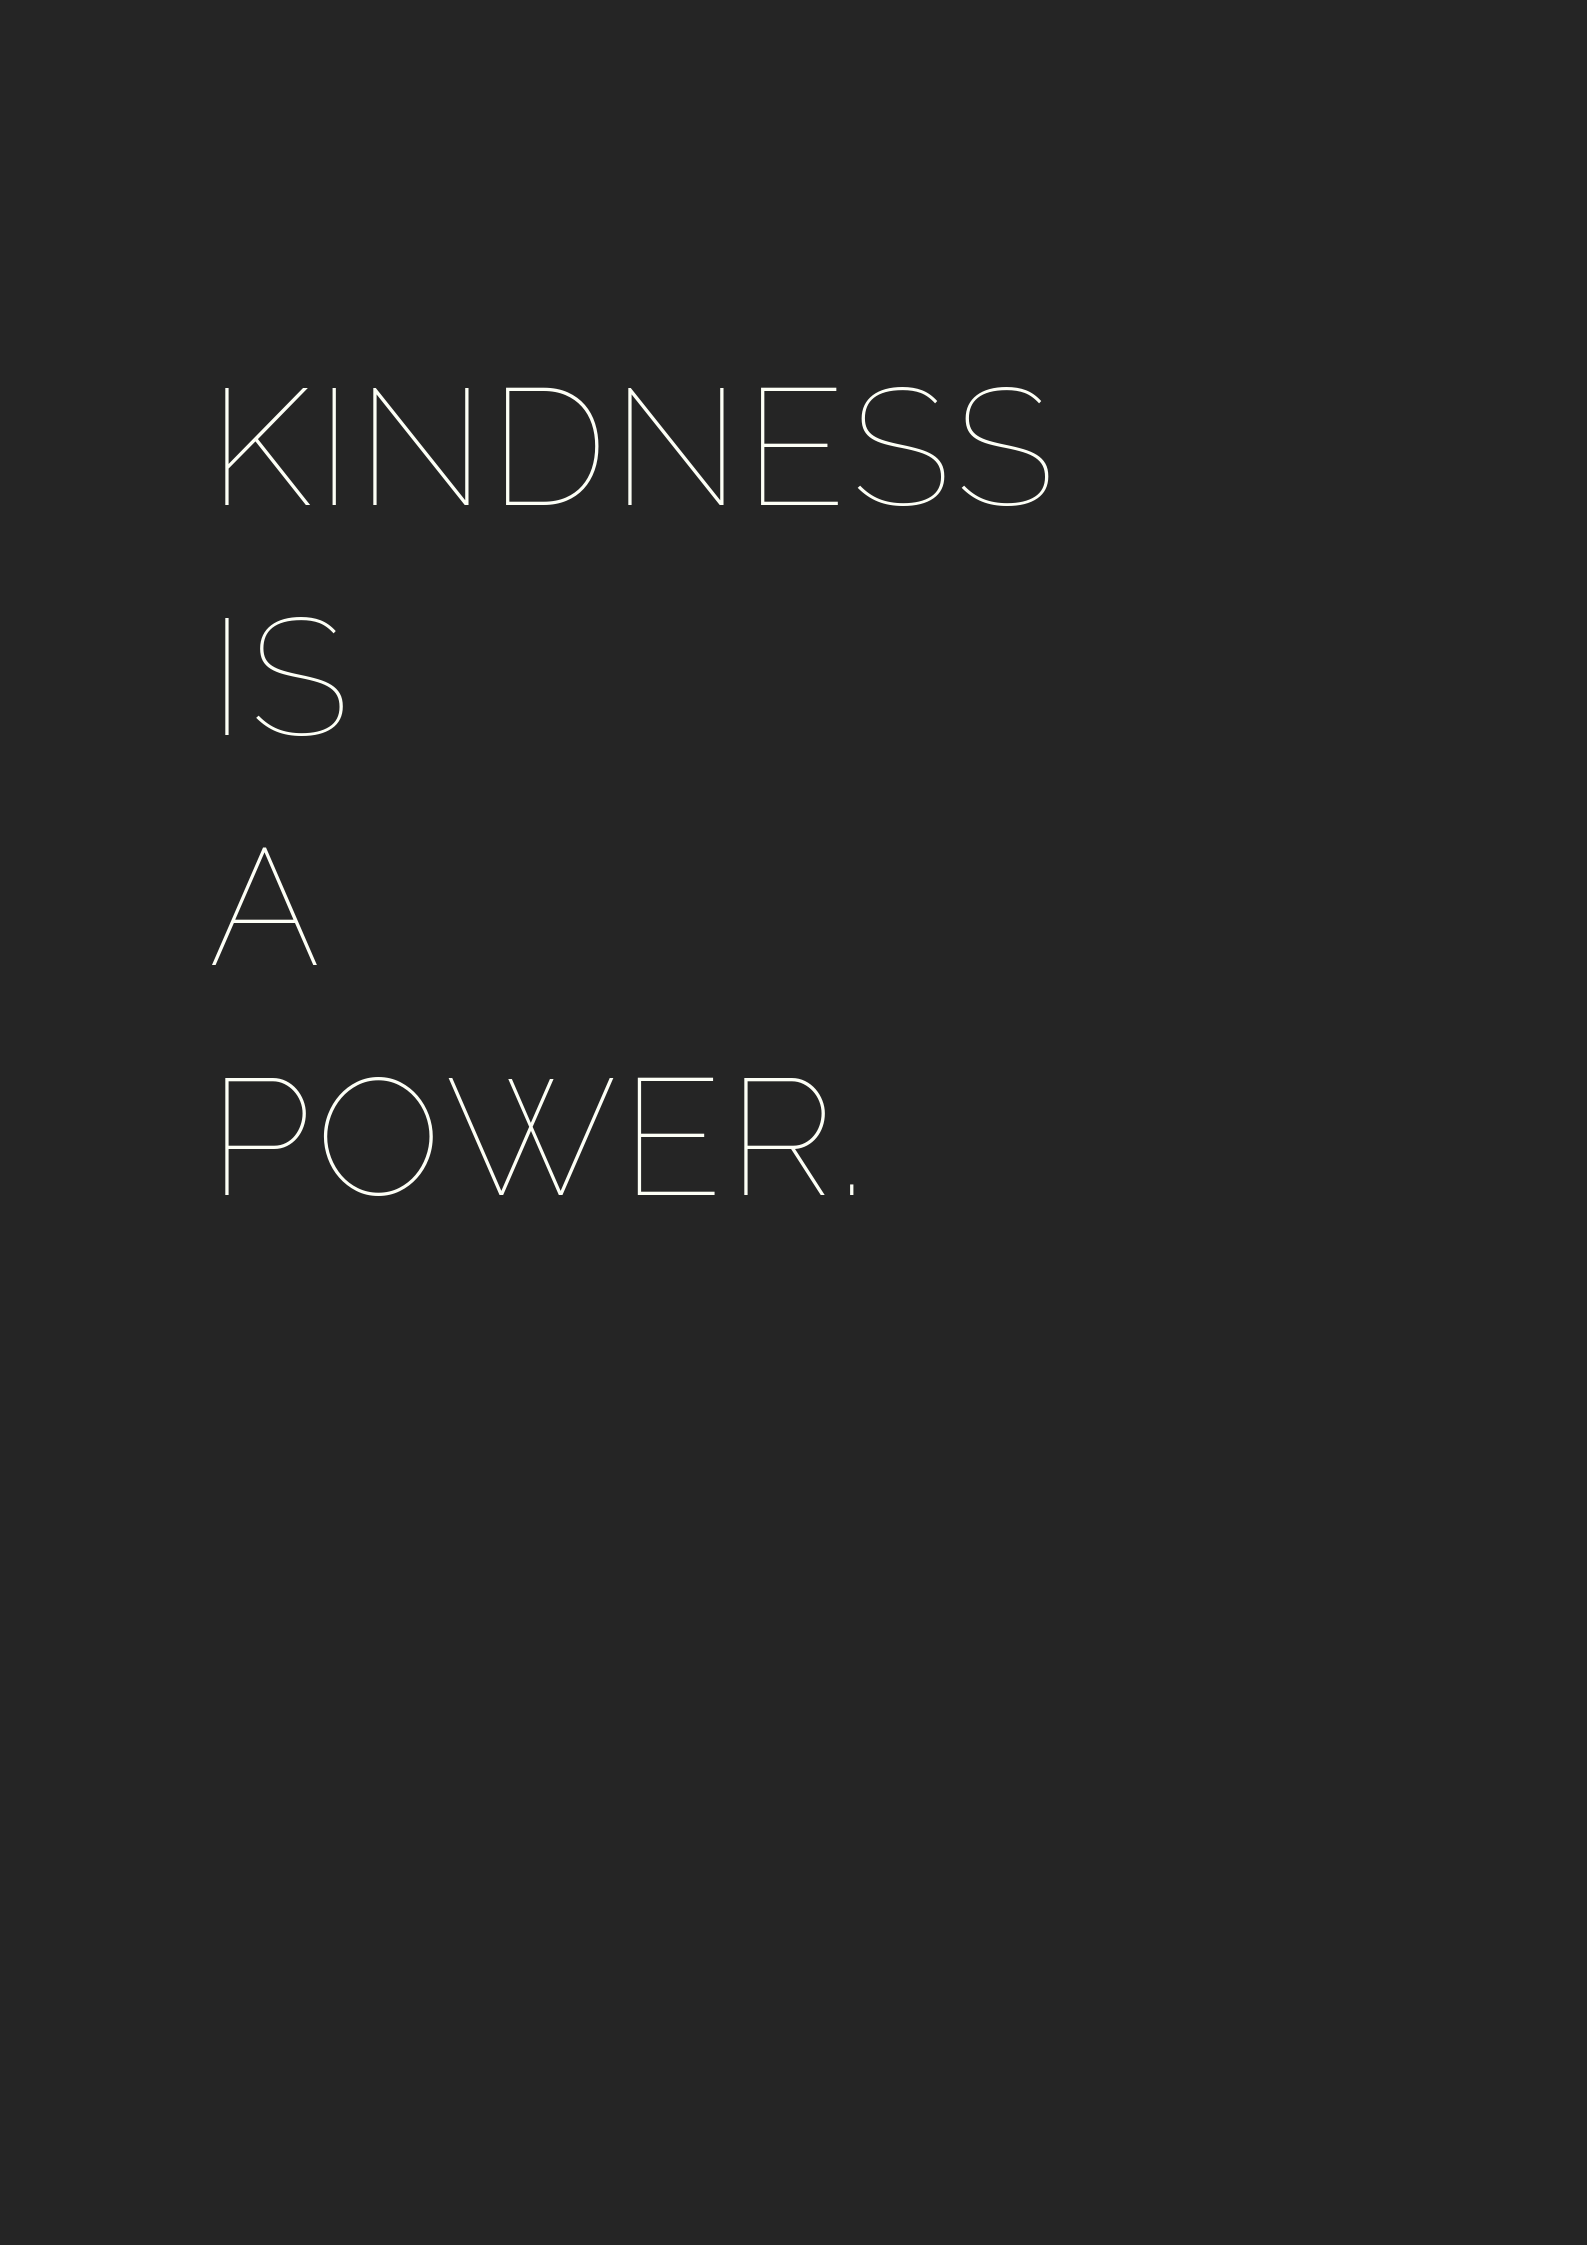 Kindness is a power quotes quoteoftheday quotestoliveby kindness alwaysbekind powerful